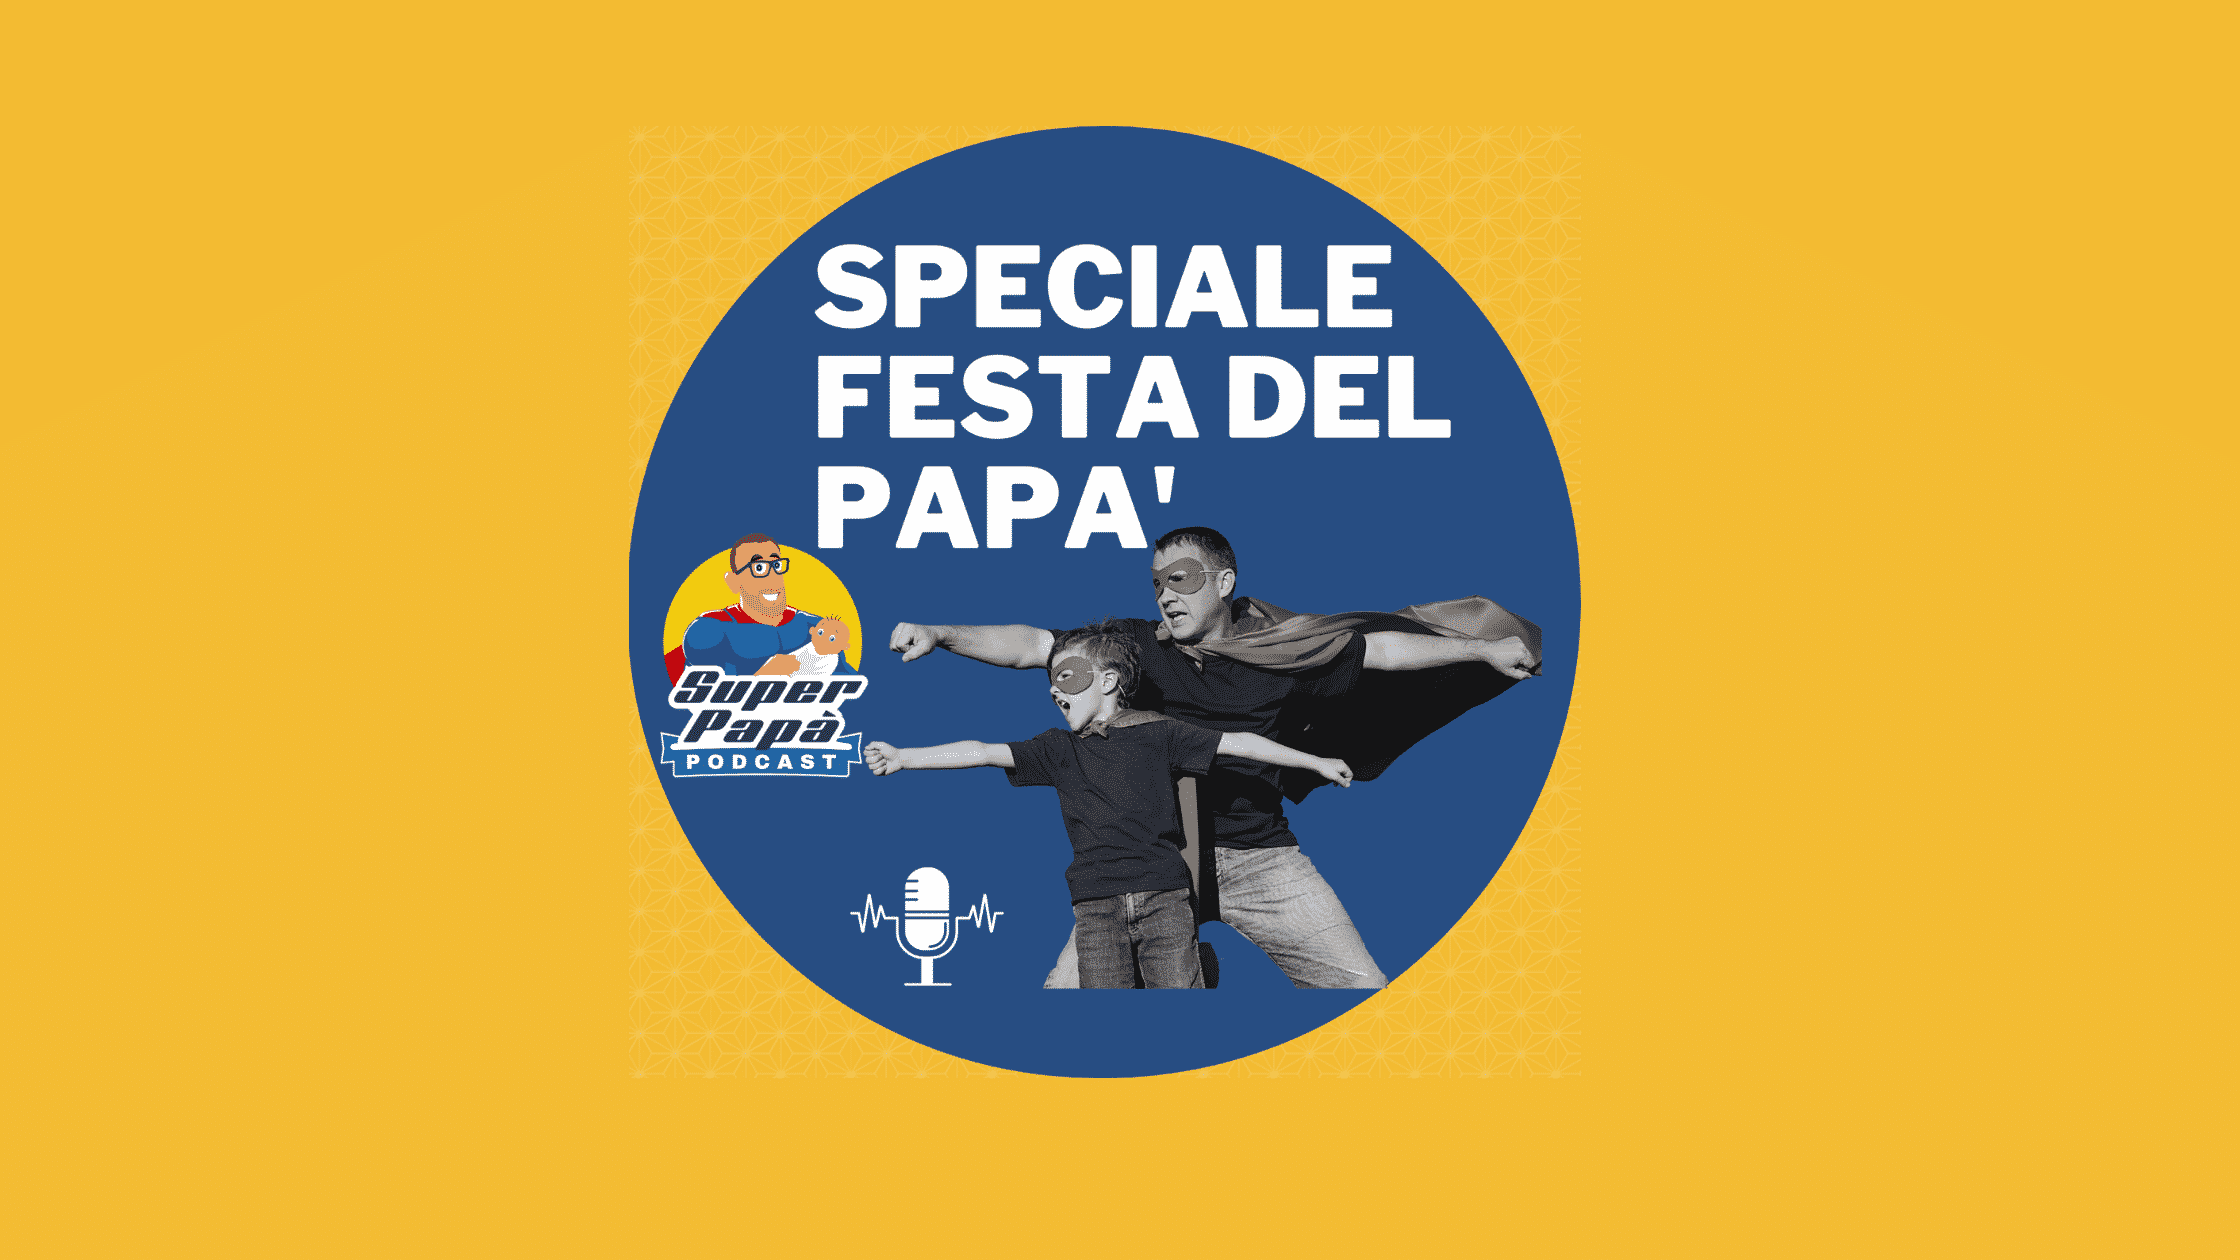 Superpapà Podcast, il podcast dei papà -  Festa del Papà